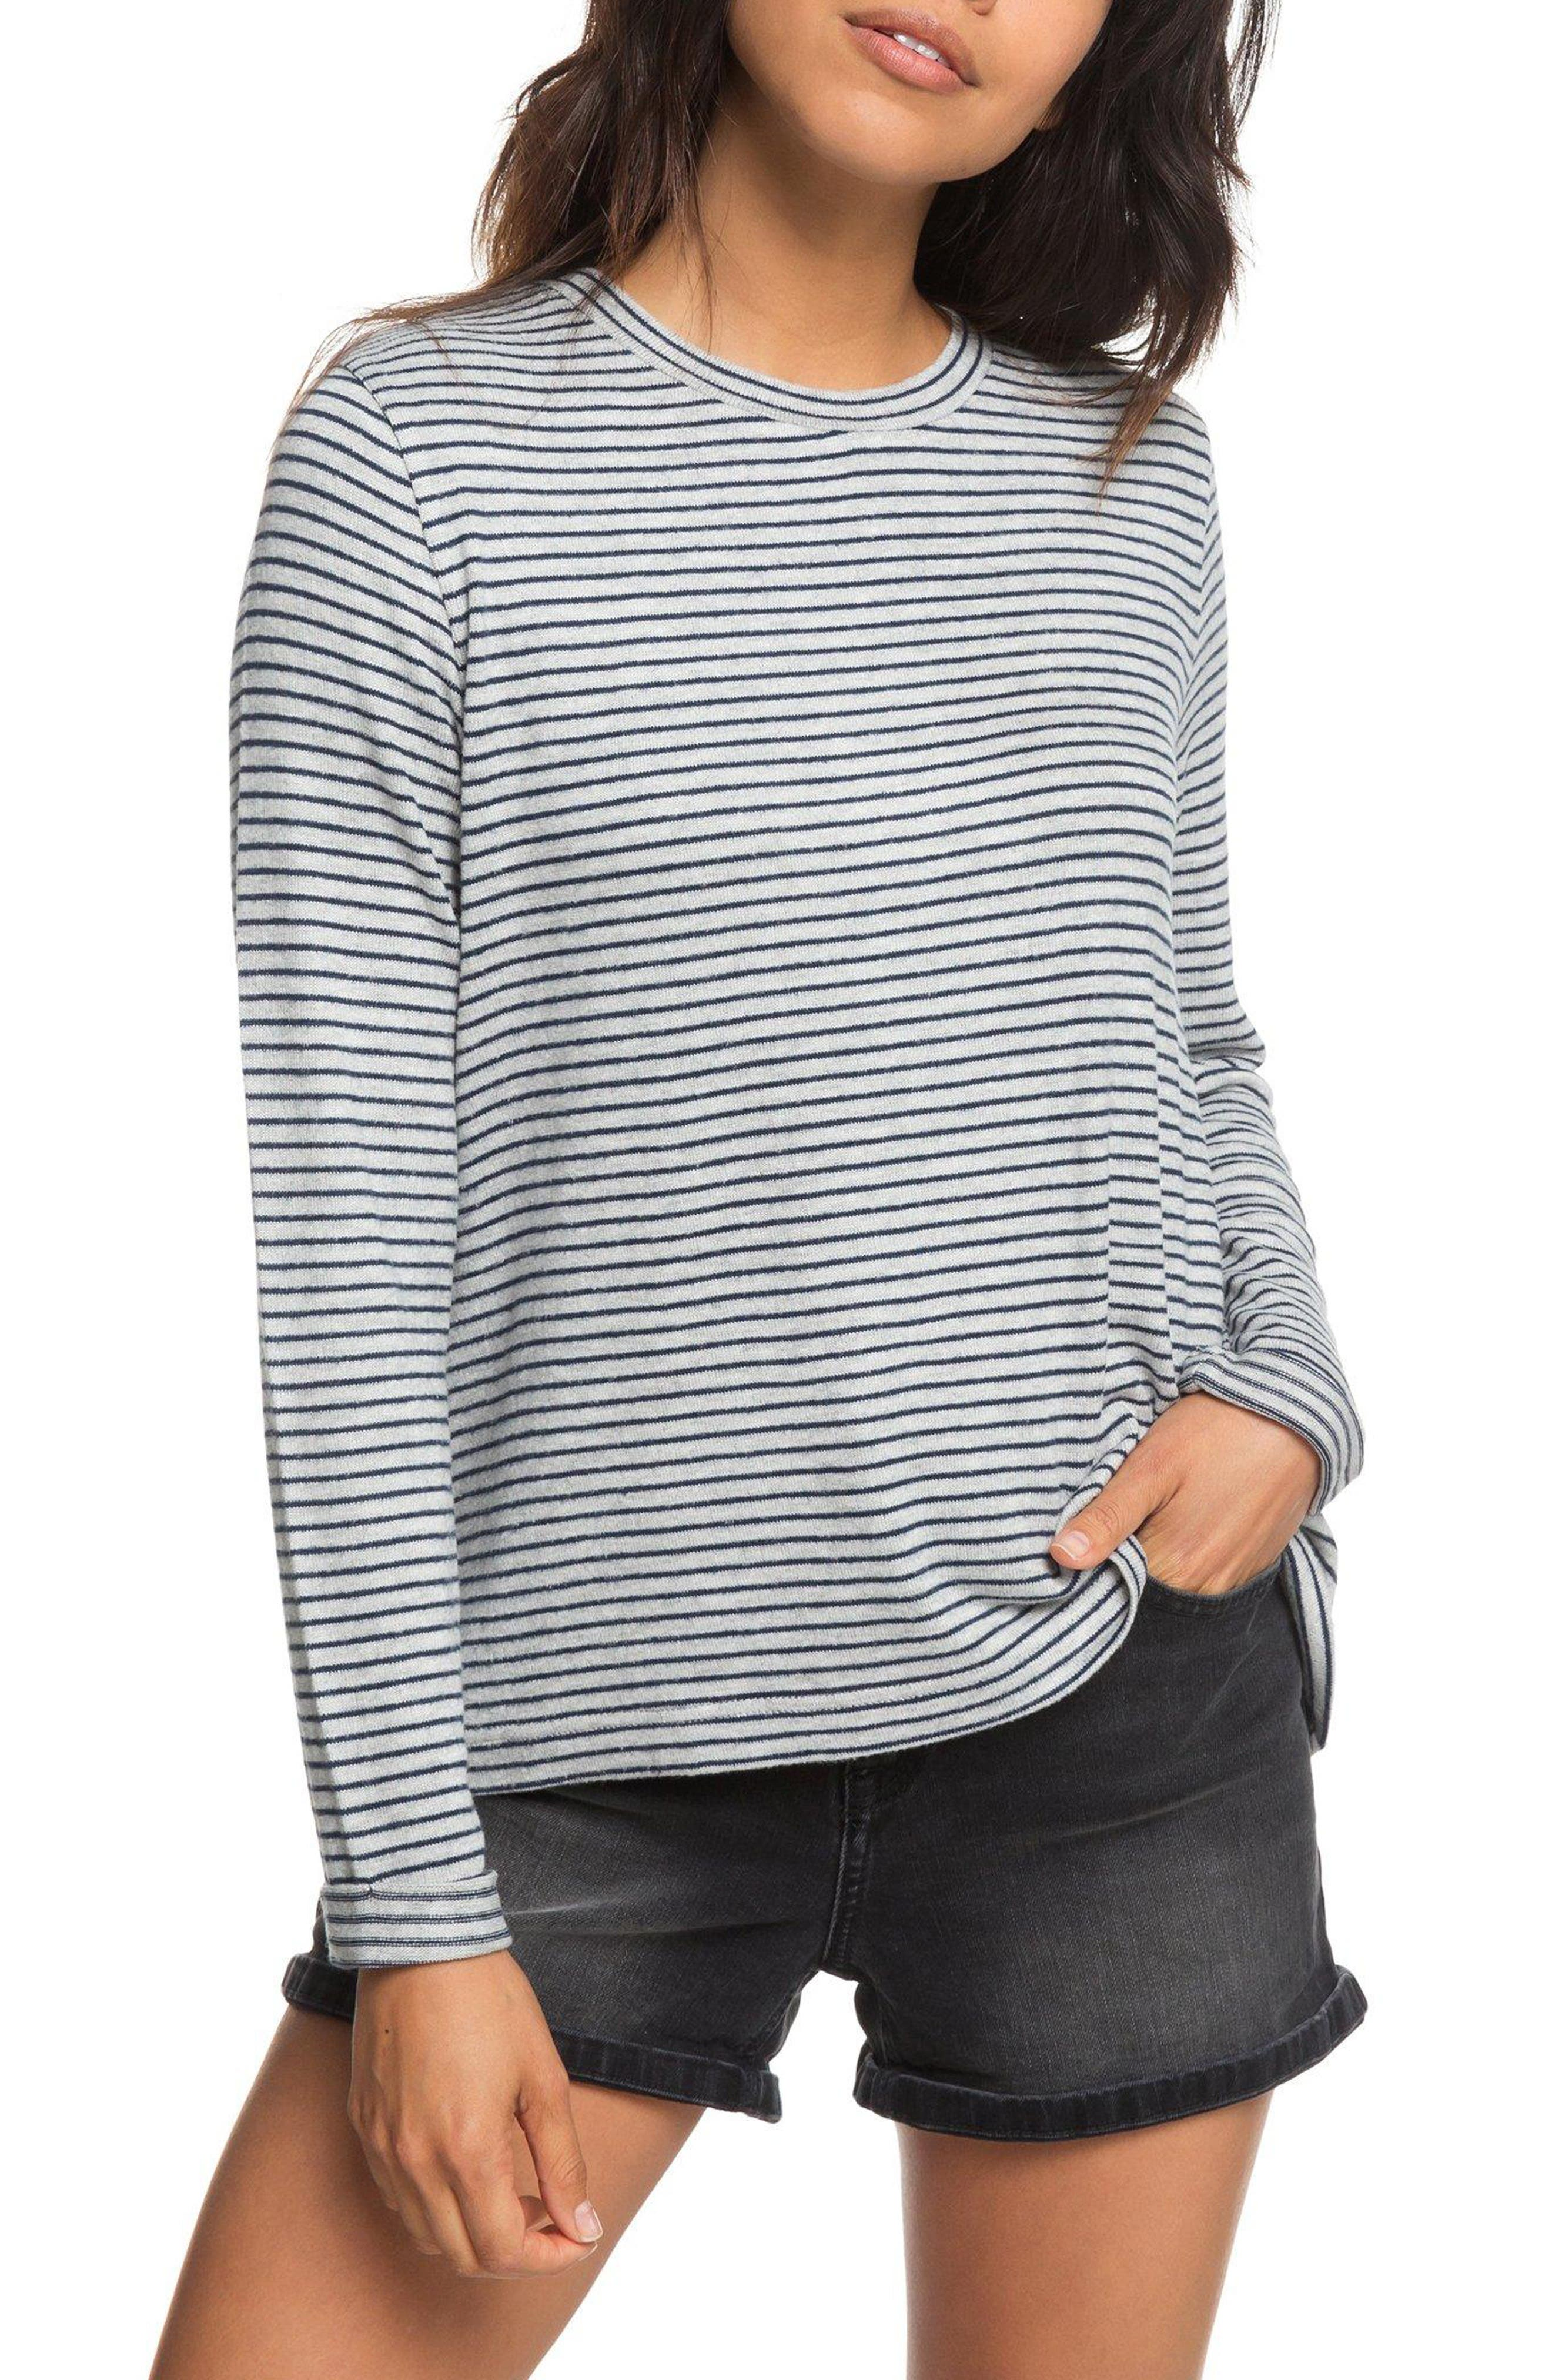 Chasing You Stripe Knit Top,                         Main,                         color, HERITAGE HEATHER THIN STRIPES